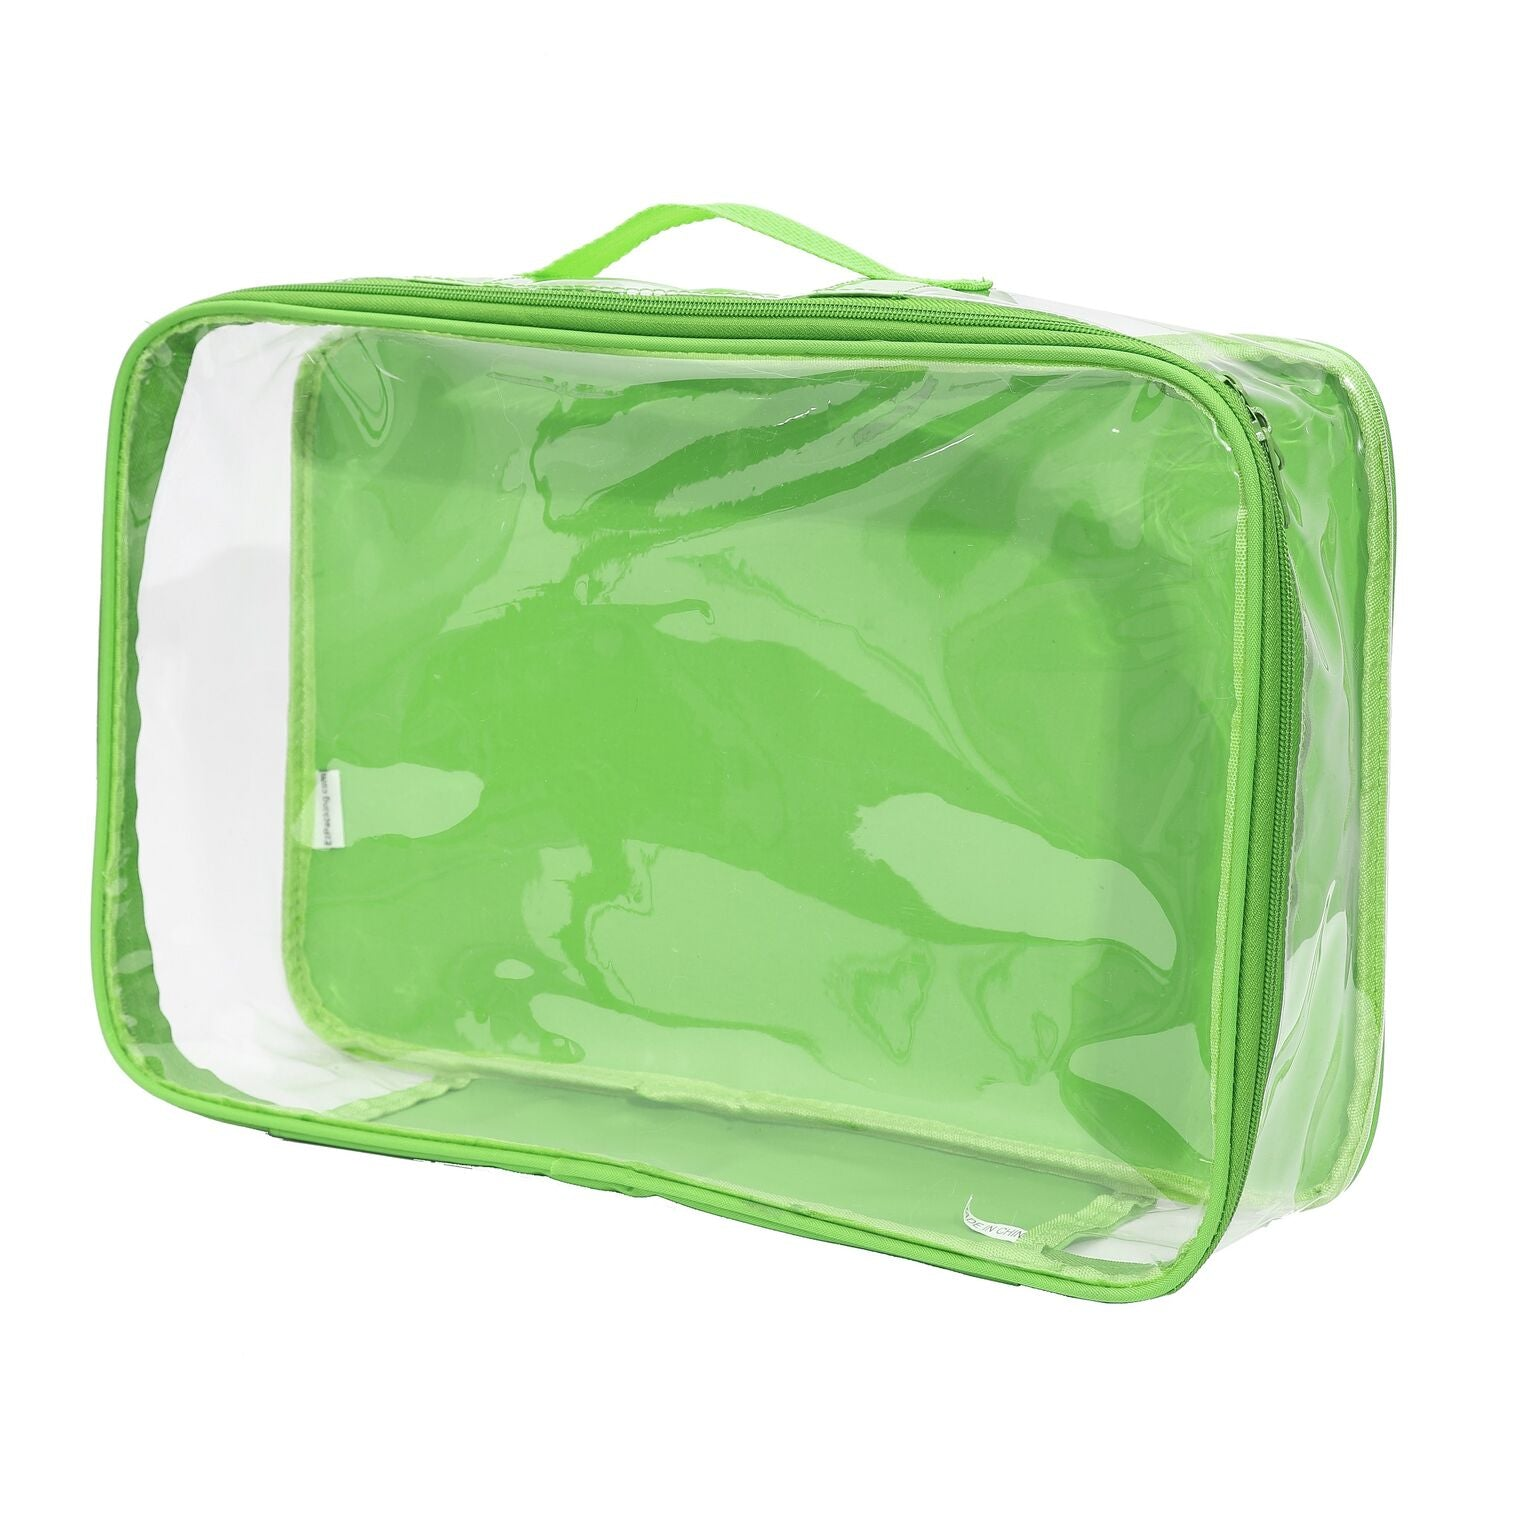 EzPacking large green packing cube